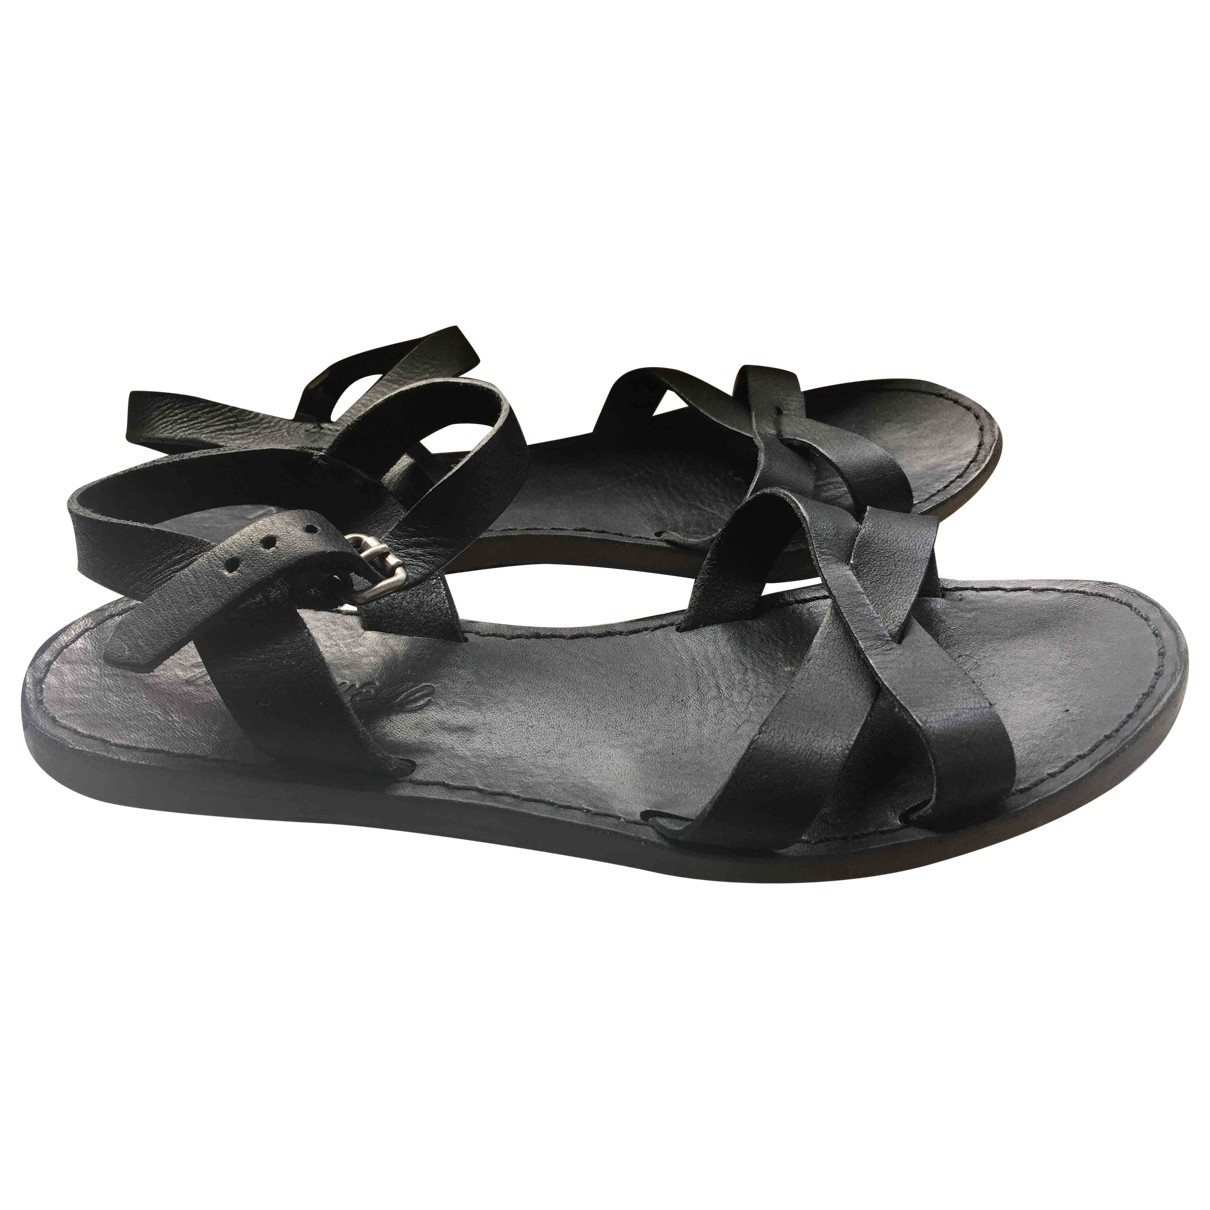 Madewell \N Black Leather Sandals for Women 5 US